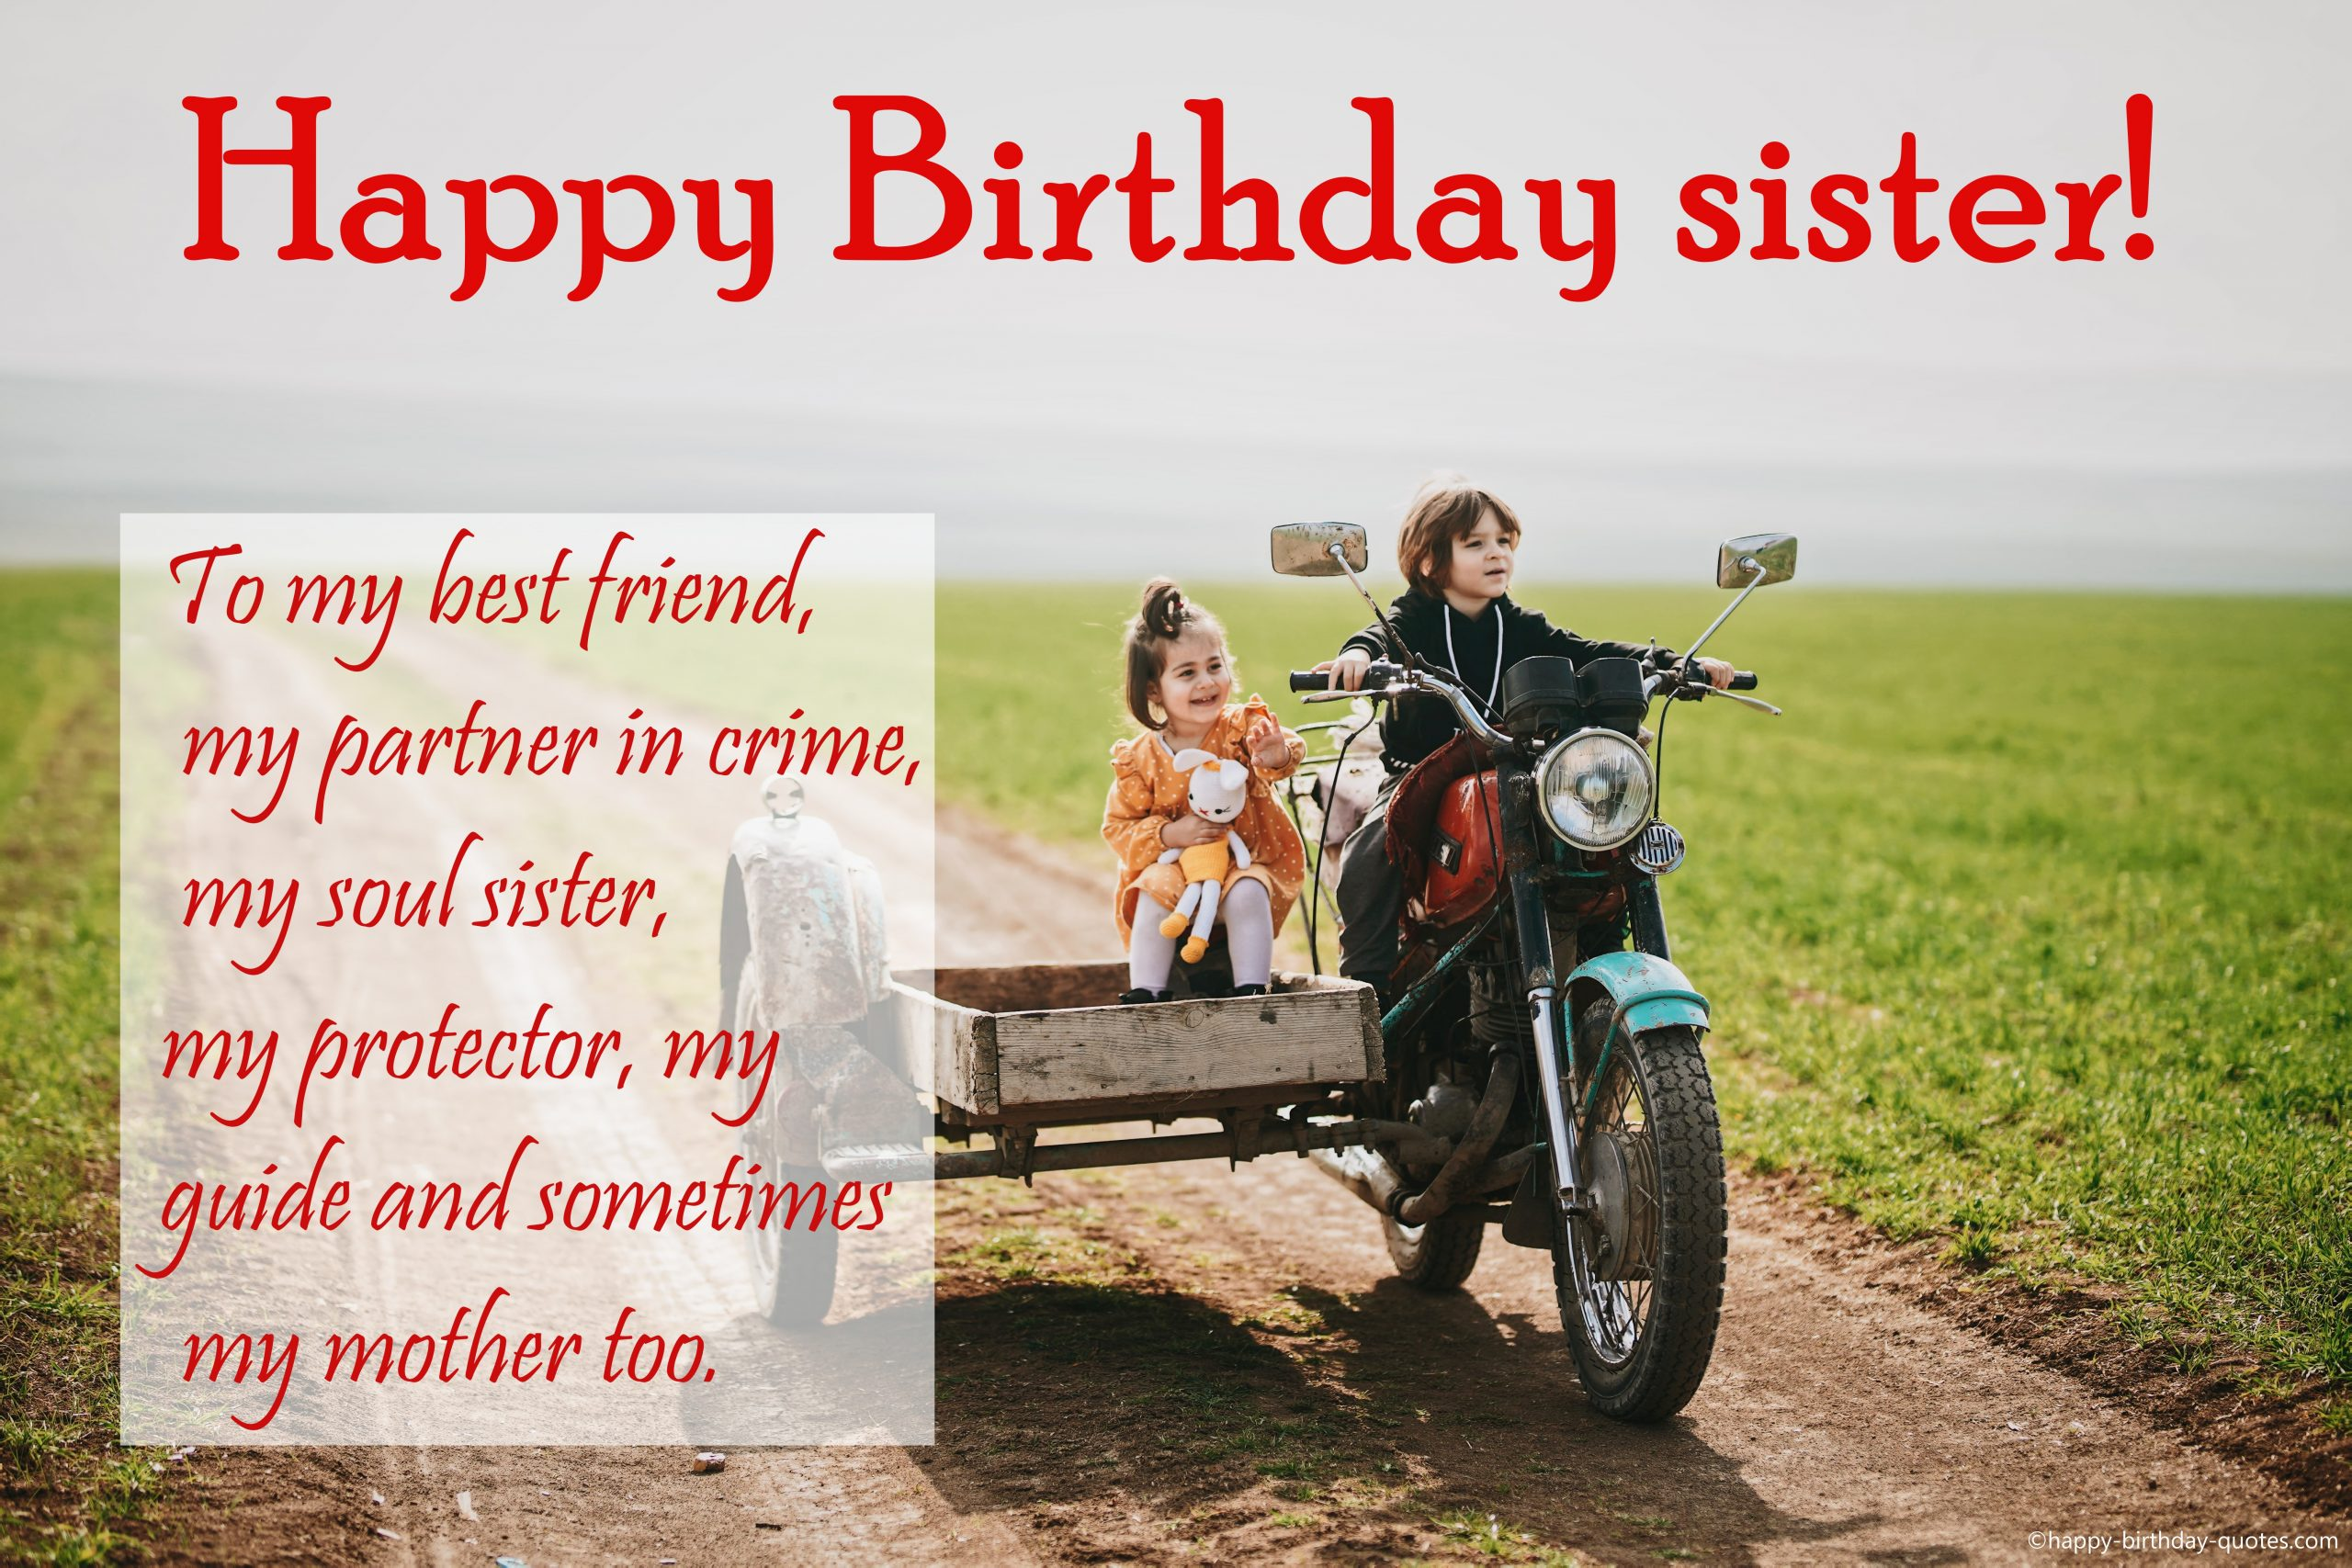 Heart Touching, Emotional Birthday Wishes For Sister